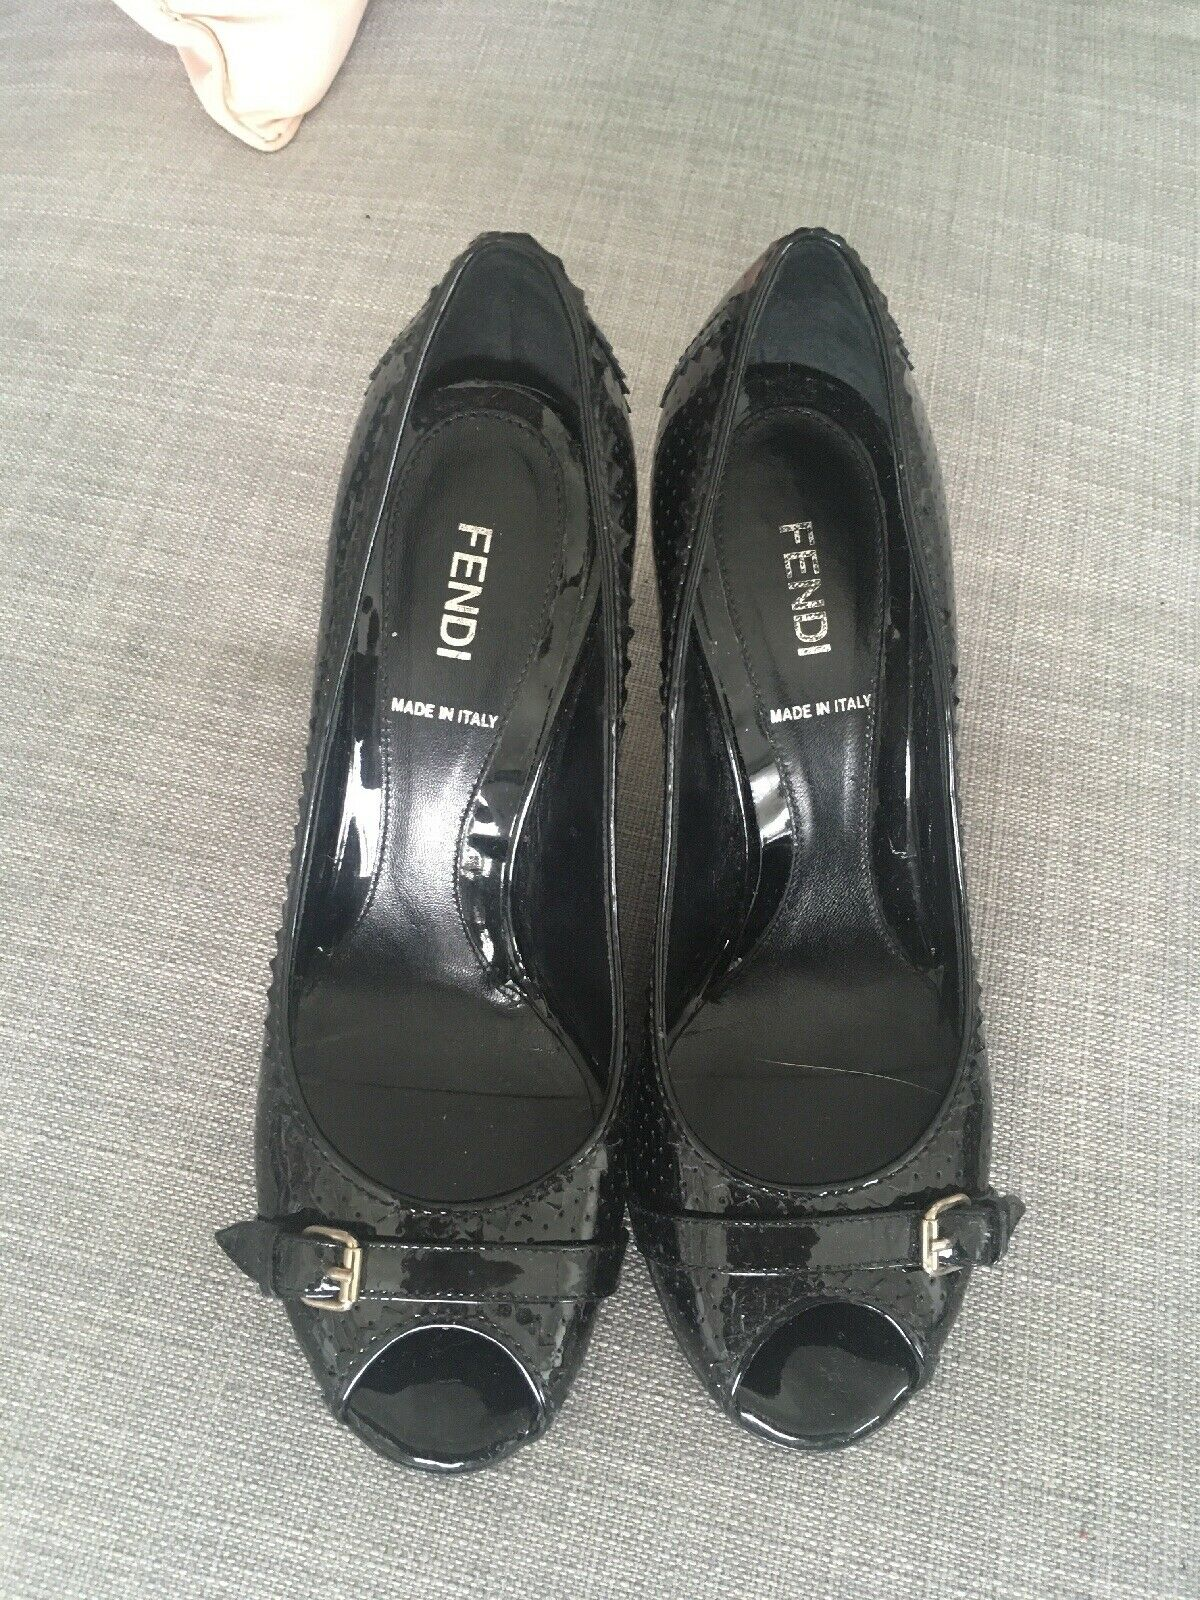 Fendi Peeptoe Heels Heels Heels Patent Leather 36.5 316474